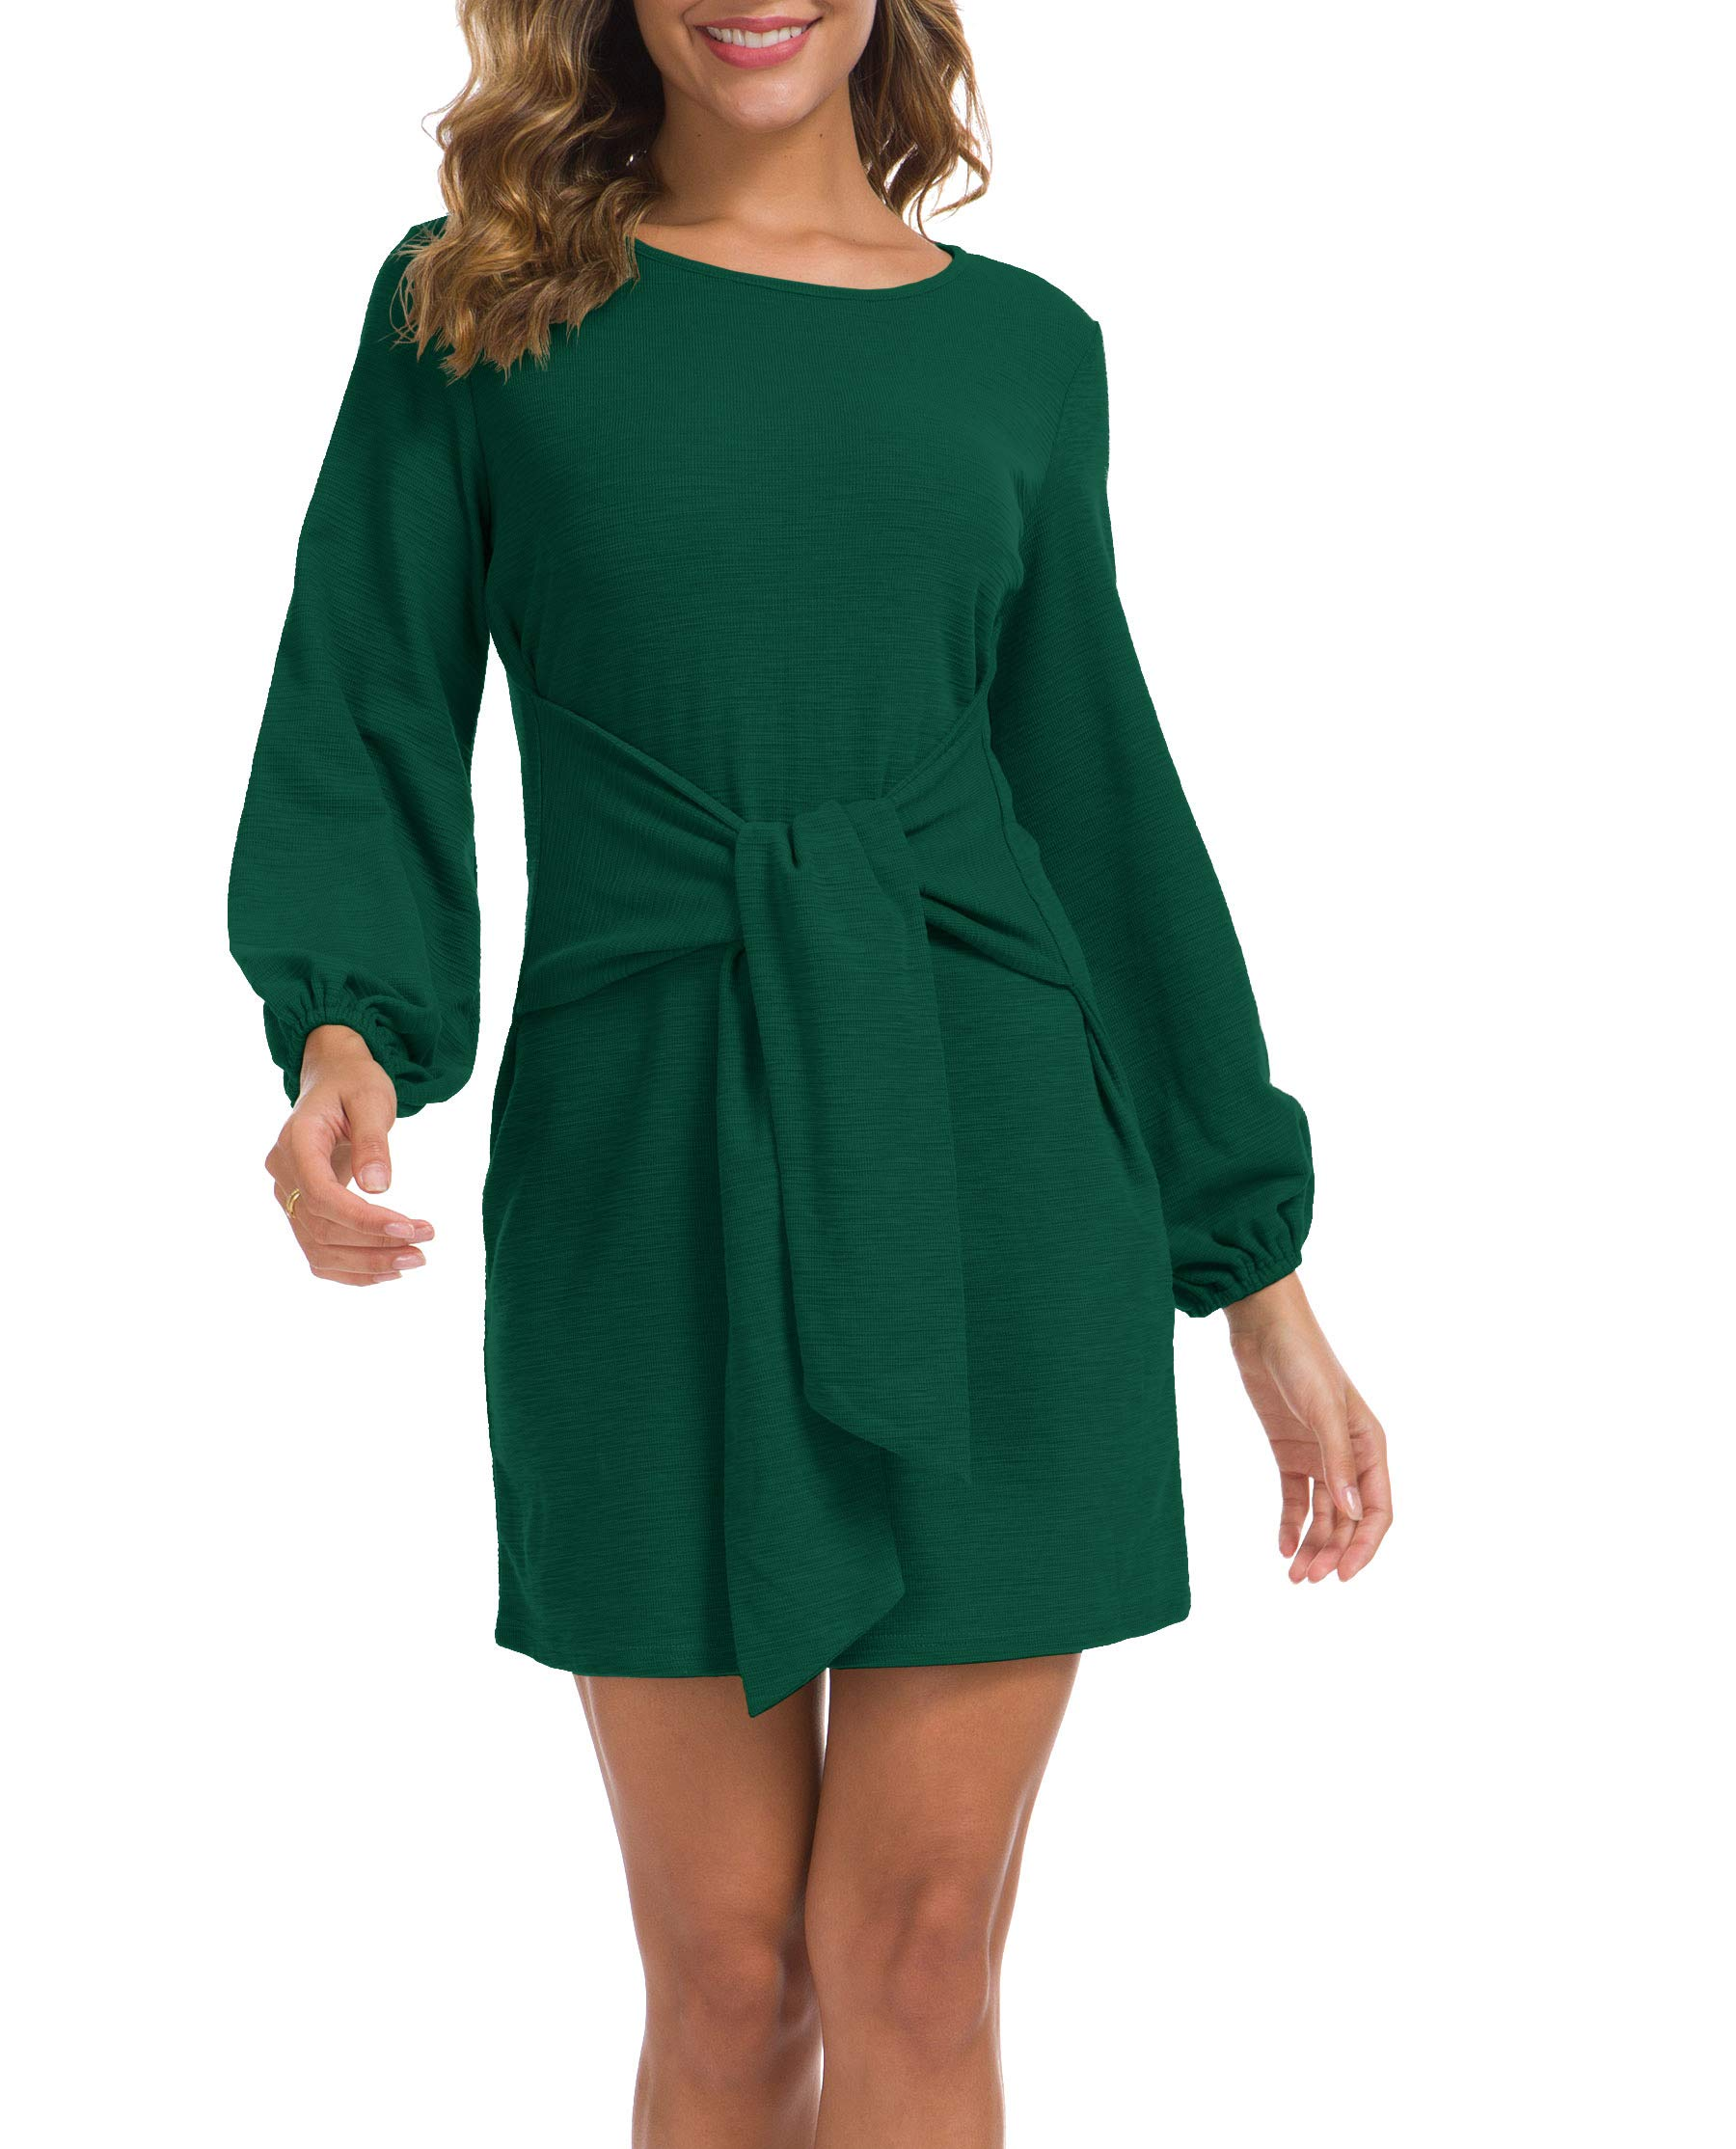 Sweater Dress - Fanew Womens Cowl V- Neck Buttoned Knit Loose Fit Sweater Dress With Pocket